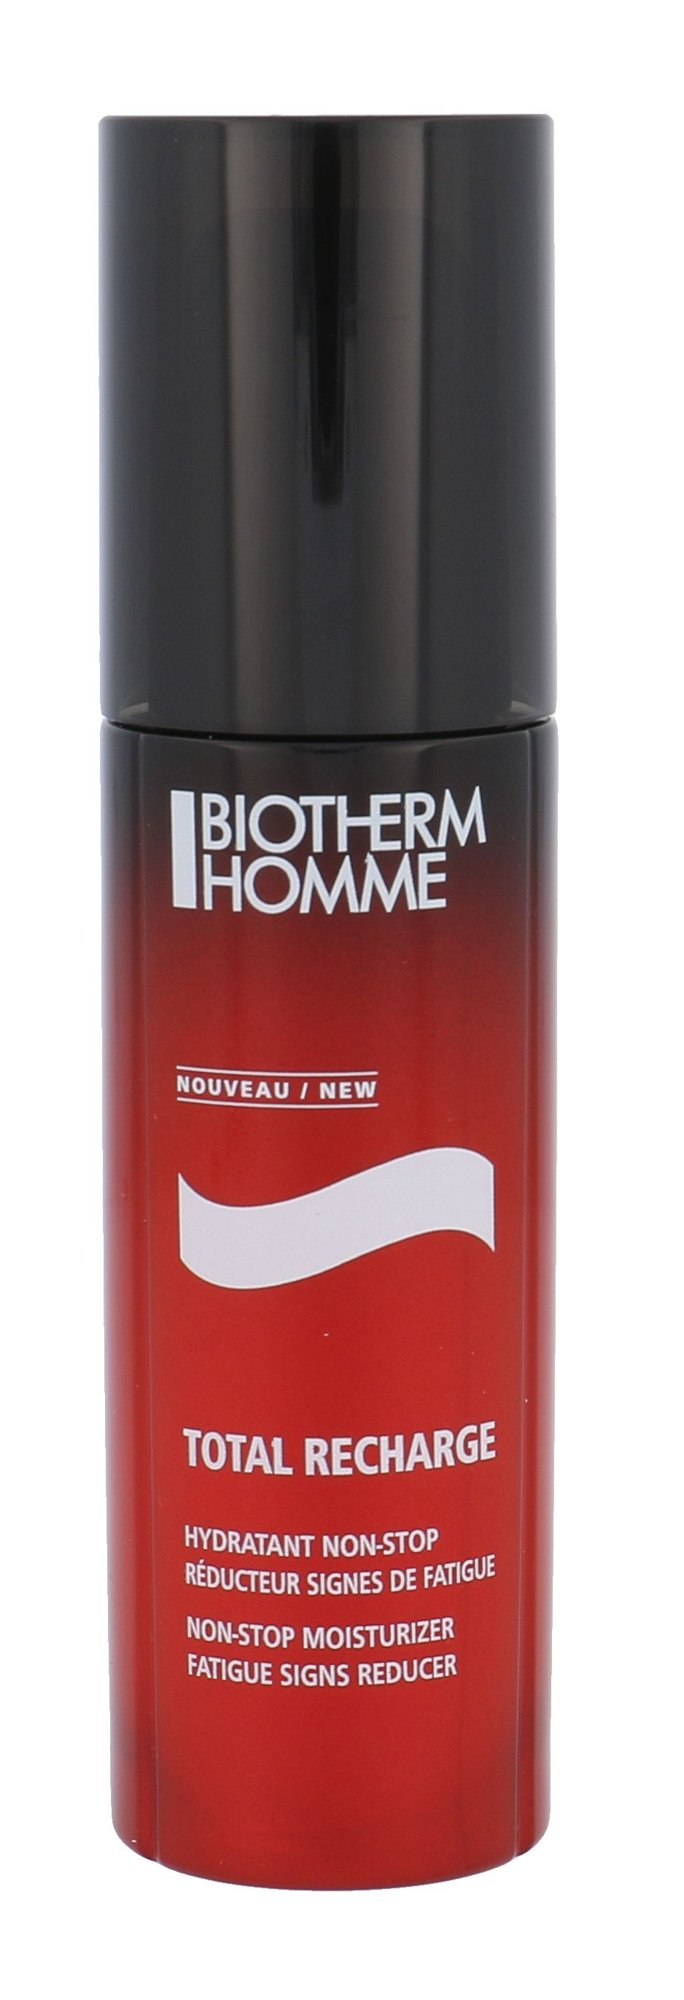 Biotherm Homme Total Recharge Cosmetic 50ml  Non-stop Moisturizer